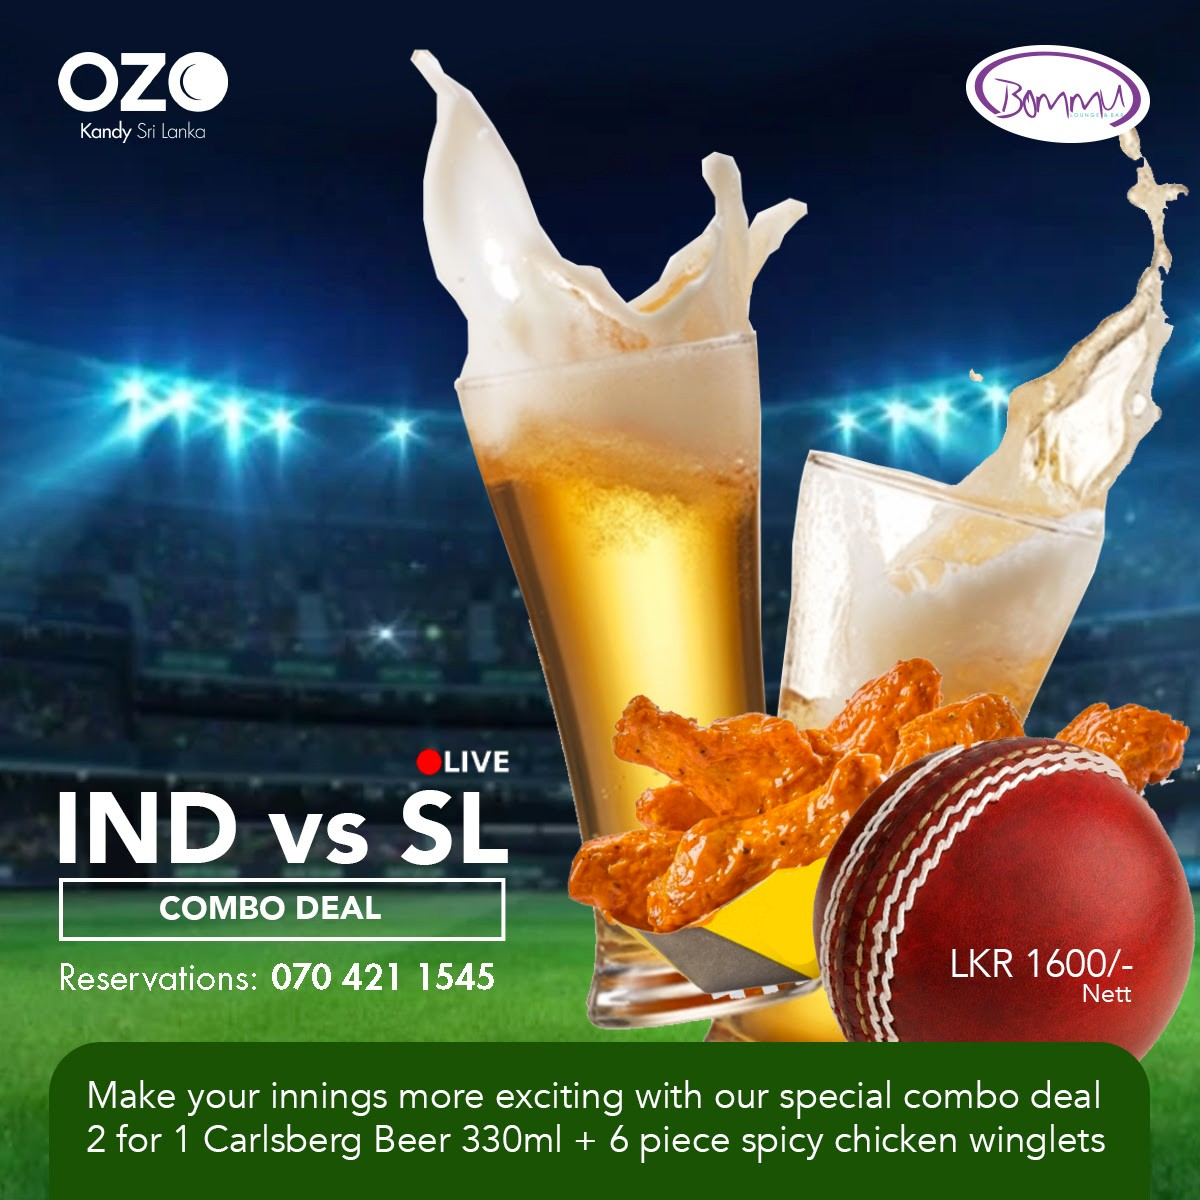 Special Combo Deal @ Bommu Lounge & Bar OZO Kandy